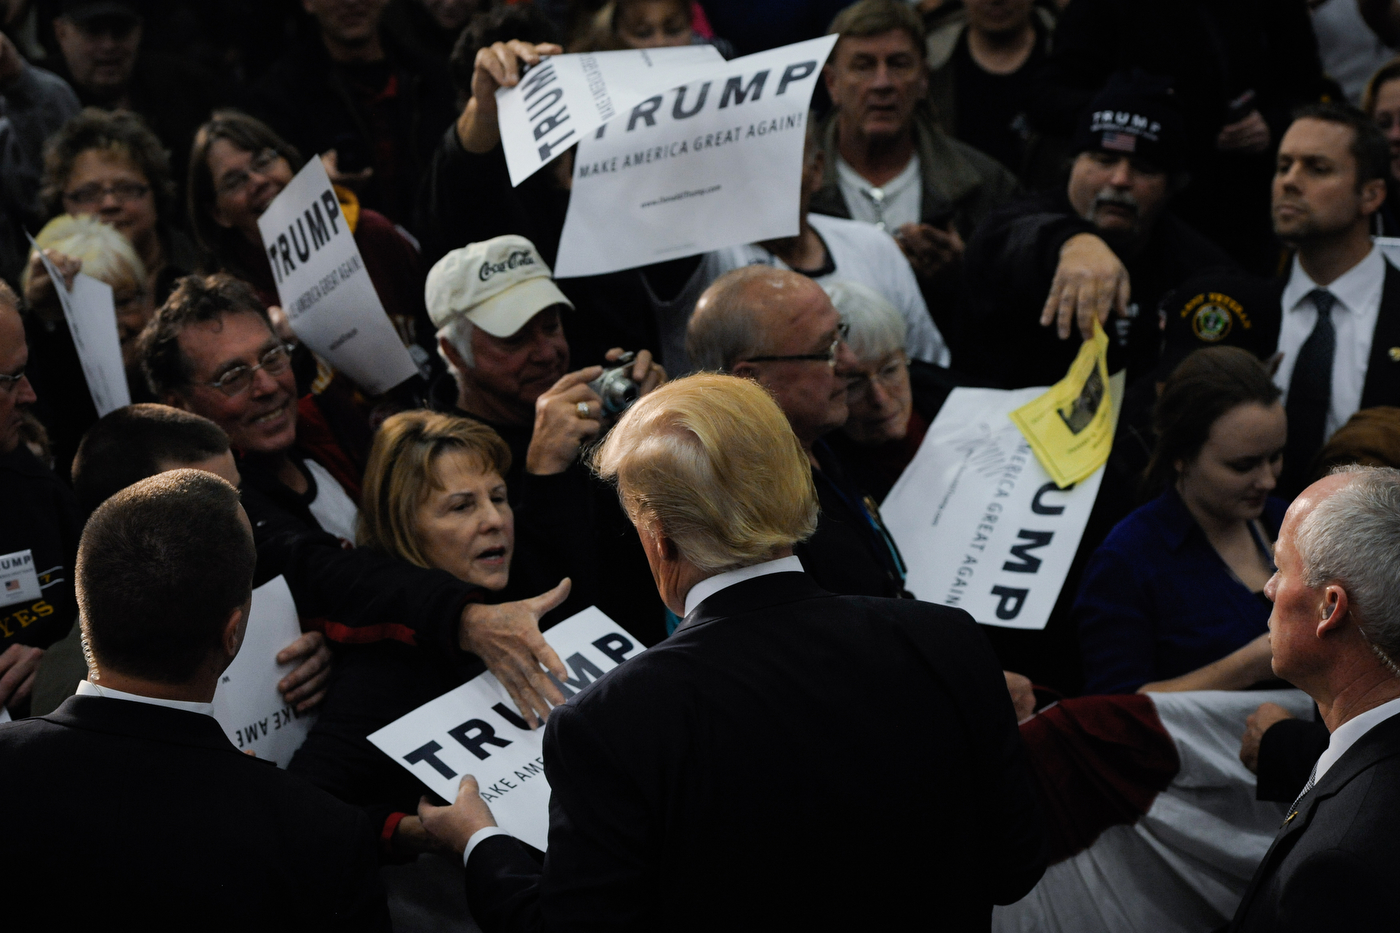 A supporter of Republican U.S. presidential candidate Donald Trump reaches out for a handshake after a rally in Spencer, Iowa on December 5, 2015.